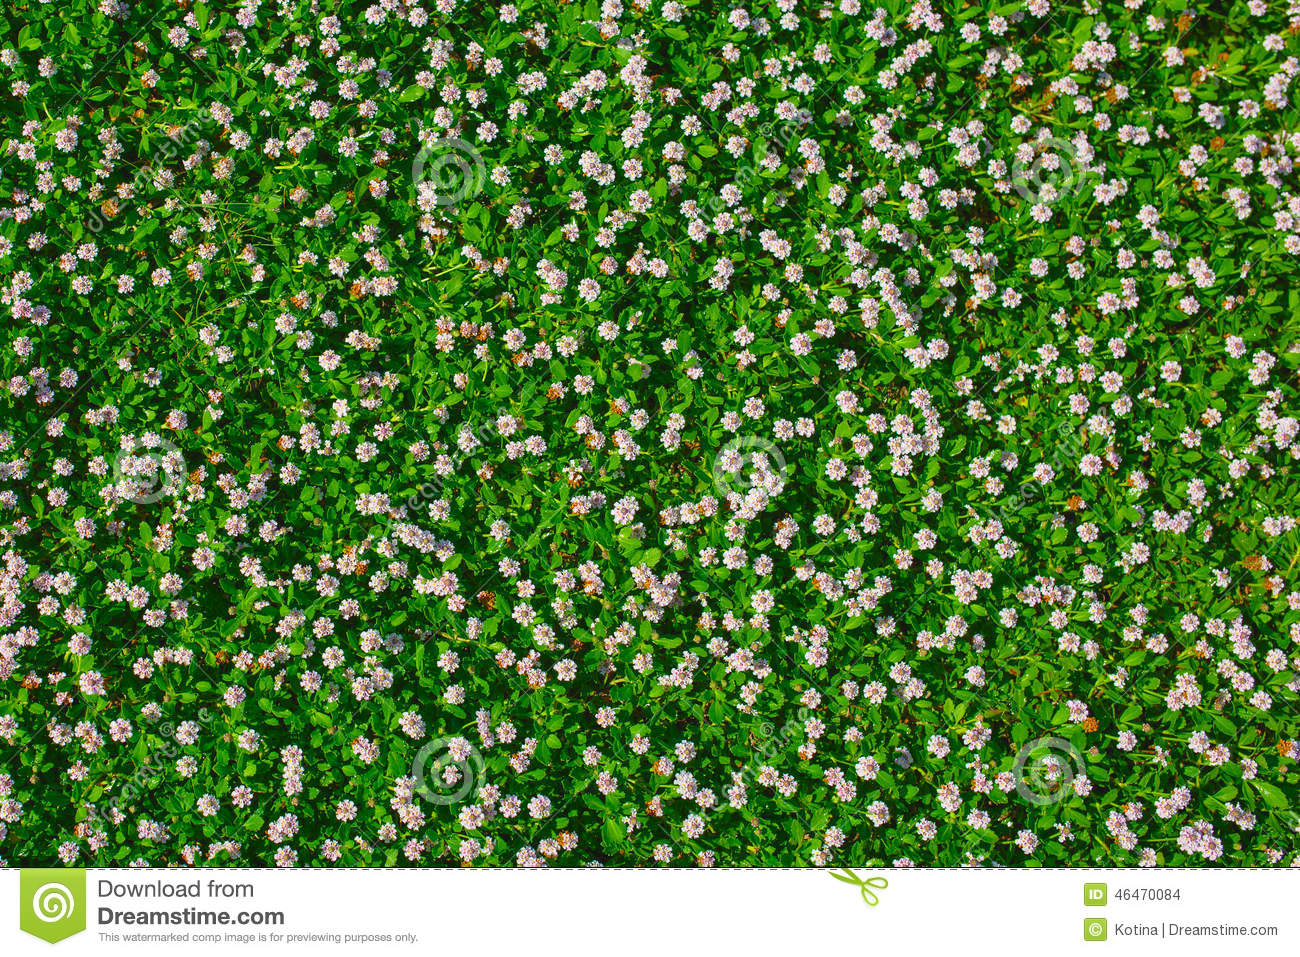 Top View Of Green Grass With Small White Flowers Stock Photo - Image ...